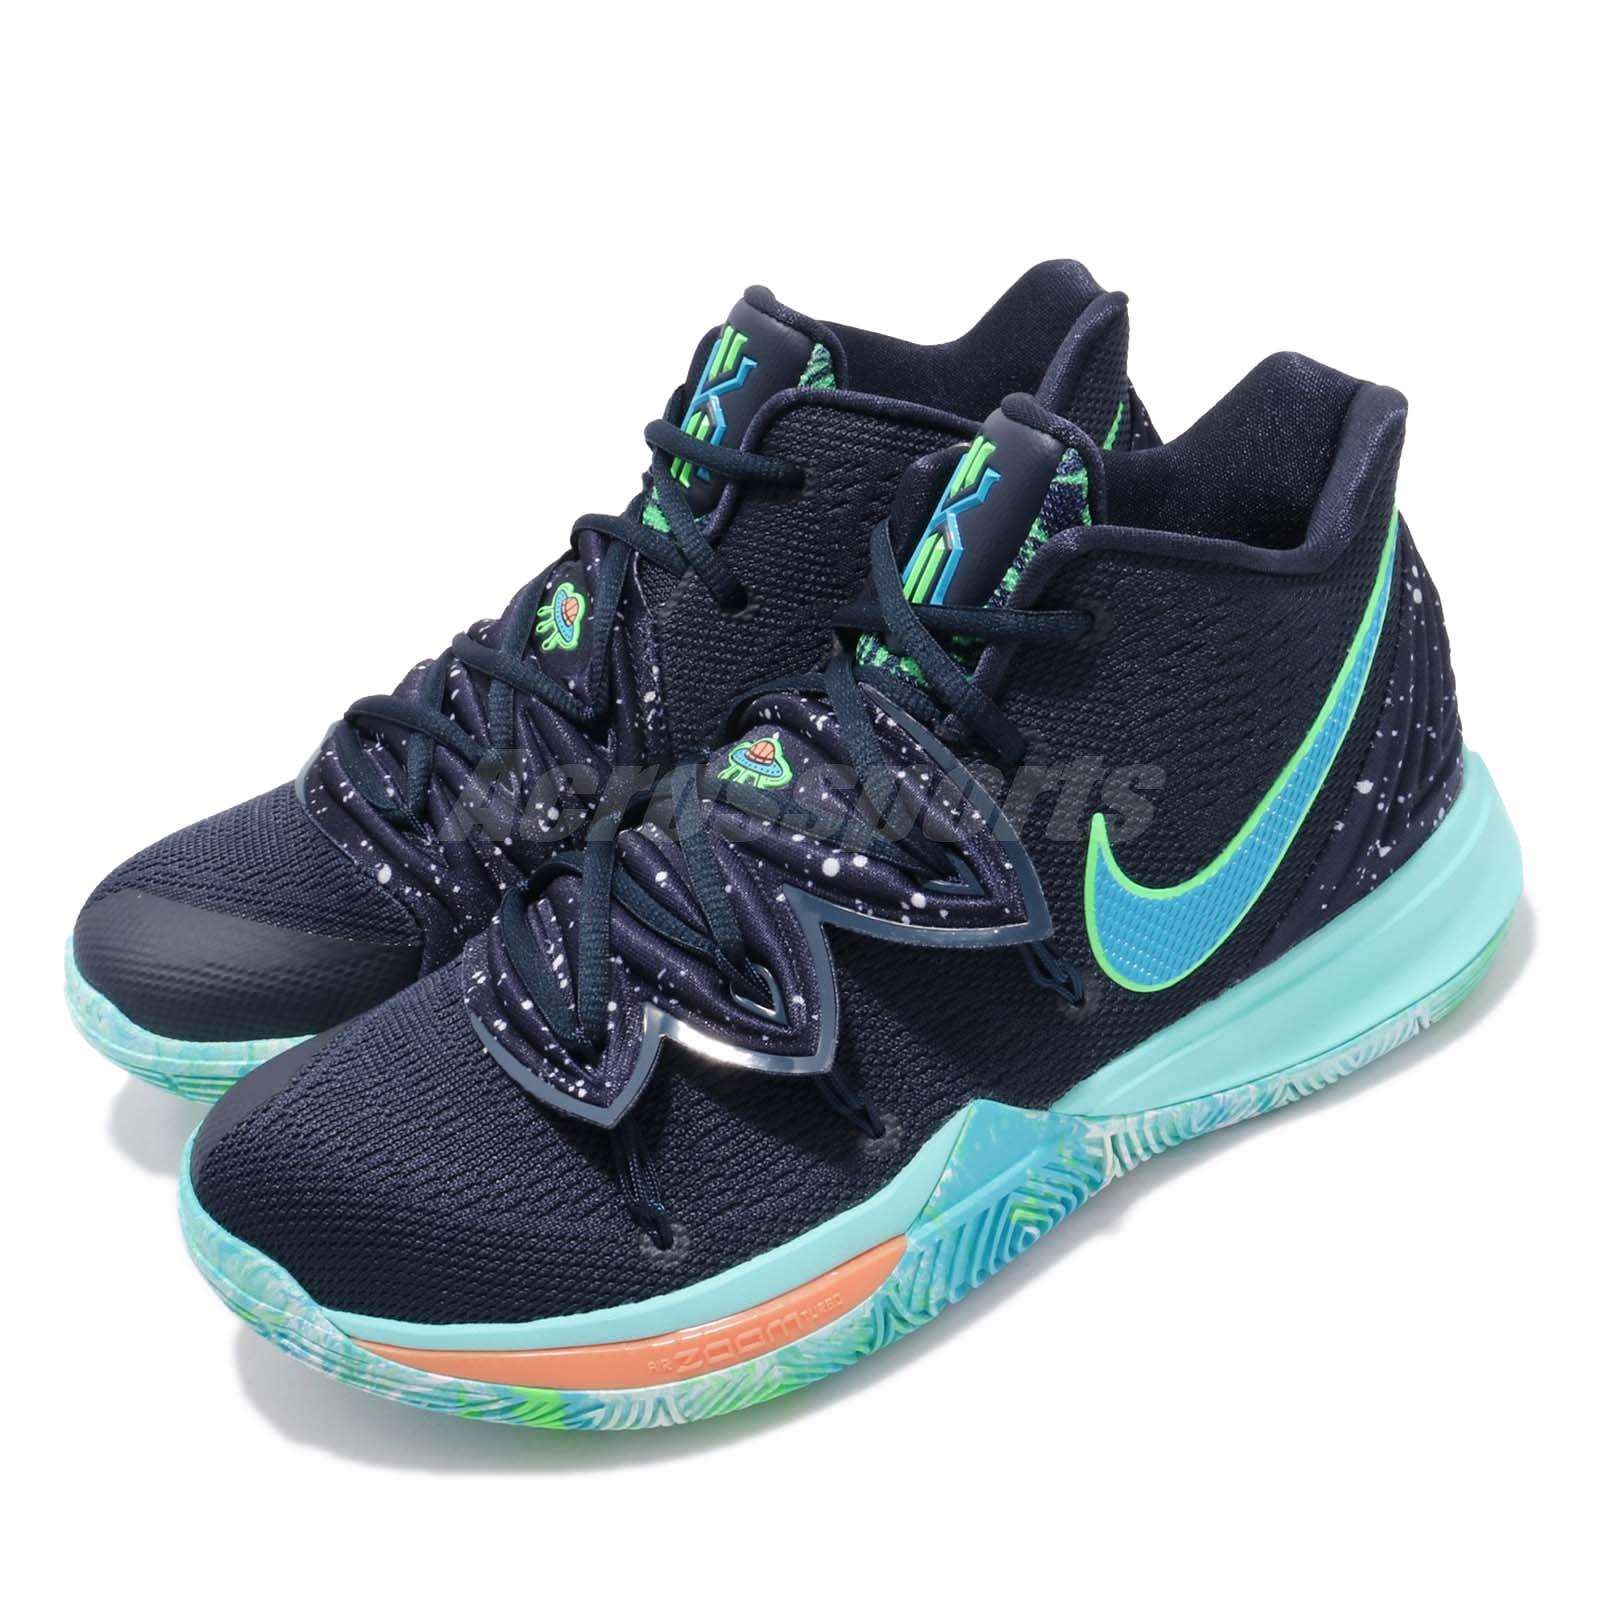 Nike Kyrie 5 EP UFO Obsidian Blue Mens Basketball Shoes ...Kyrie Irving Shoes